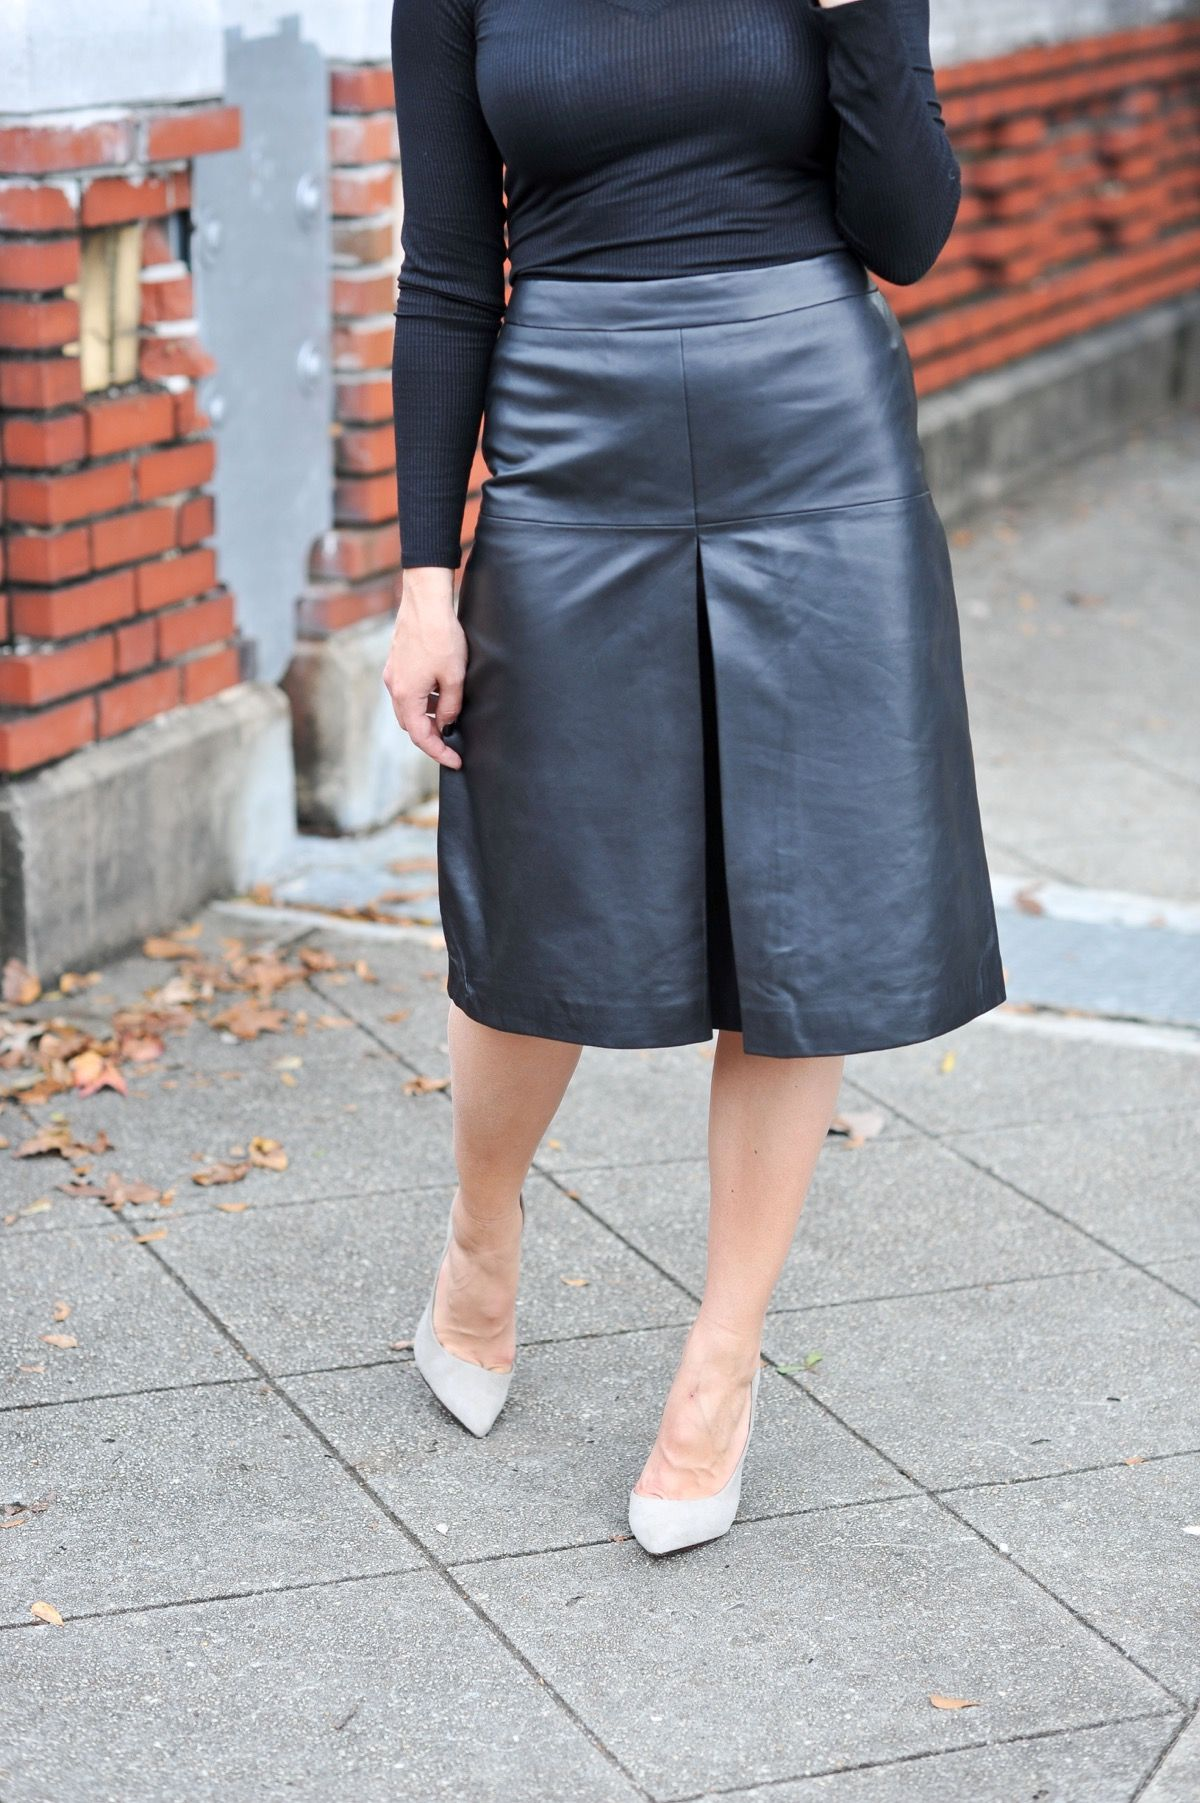 703816aa88 How To Wear All Black And Not Be Boring | My Style Vita | Black ...